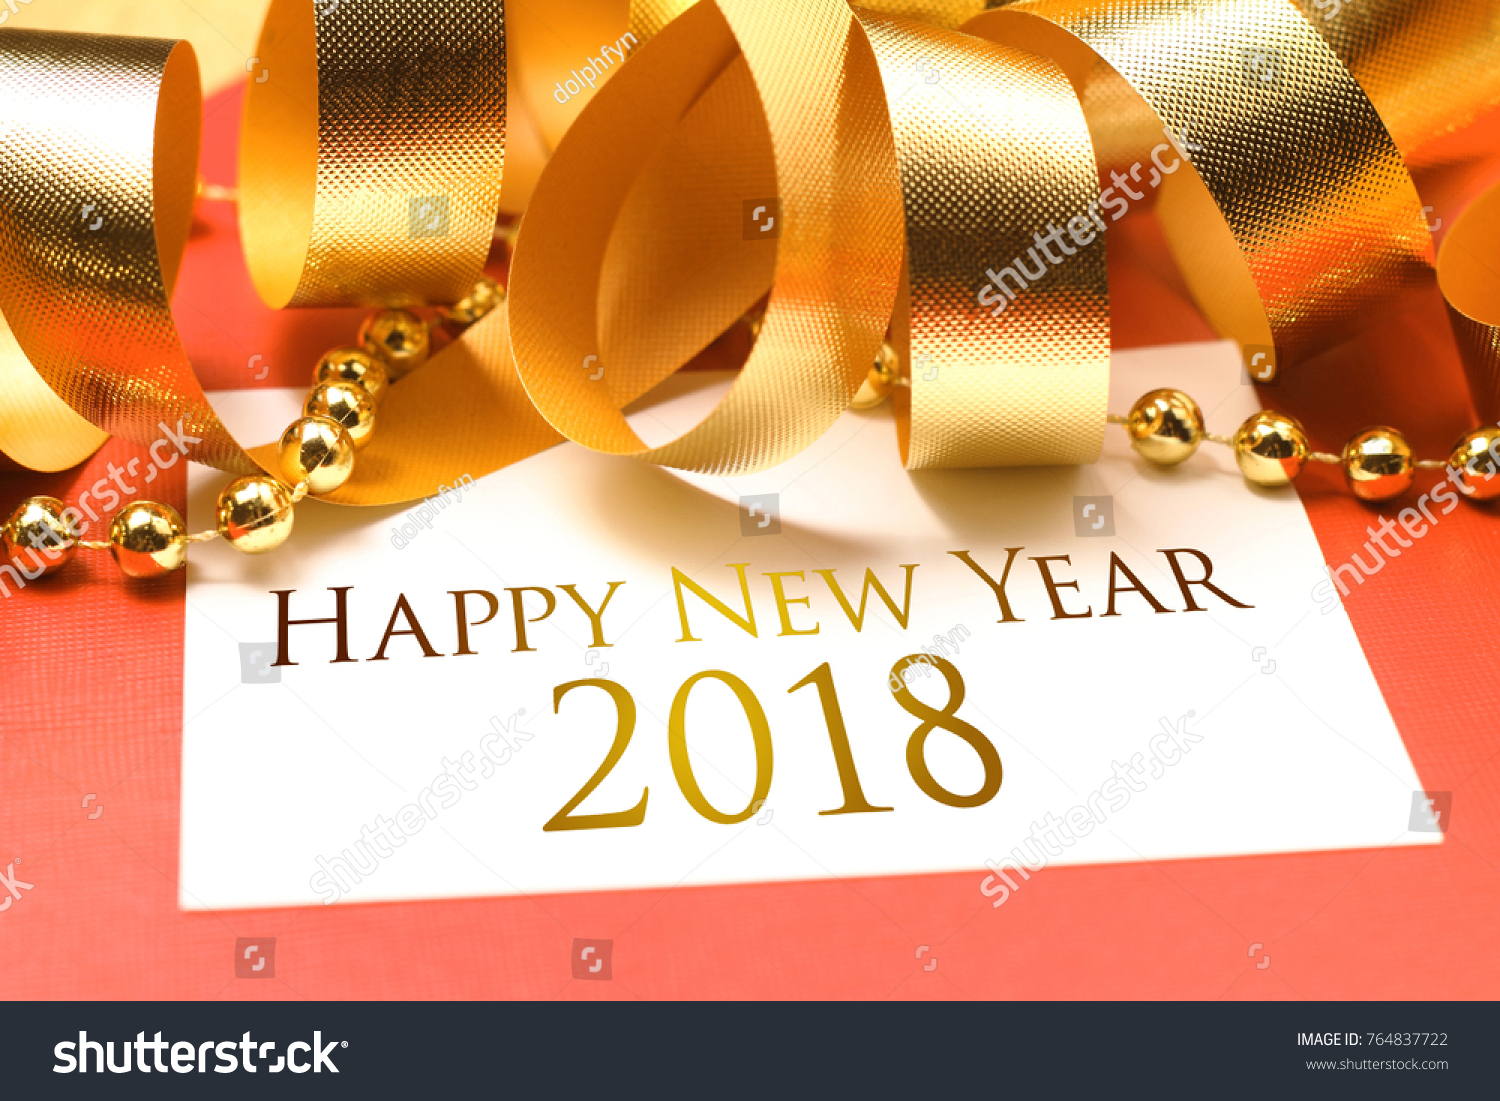 happy new year 2018 with gold decoration we wish you a new year filled with